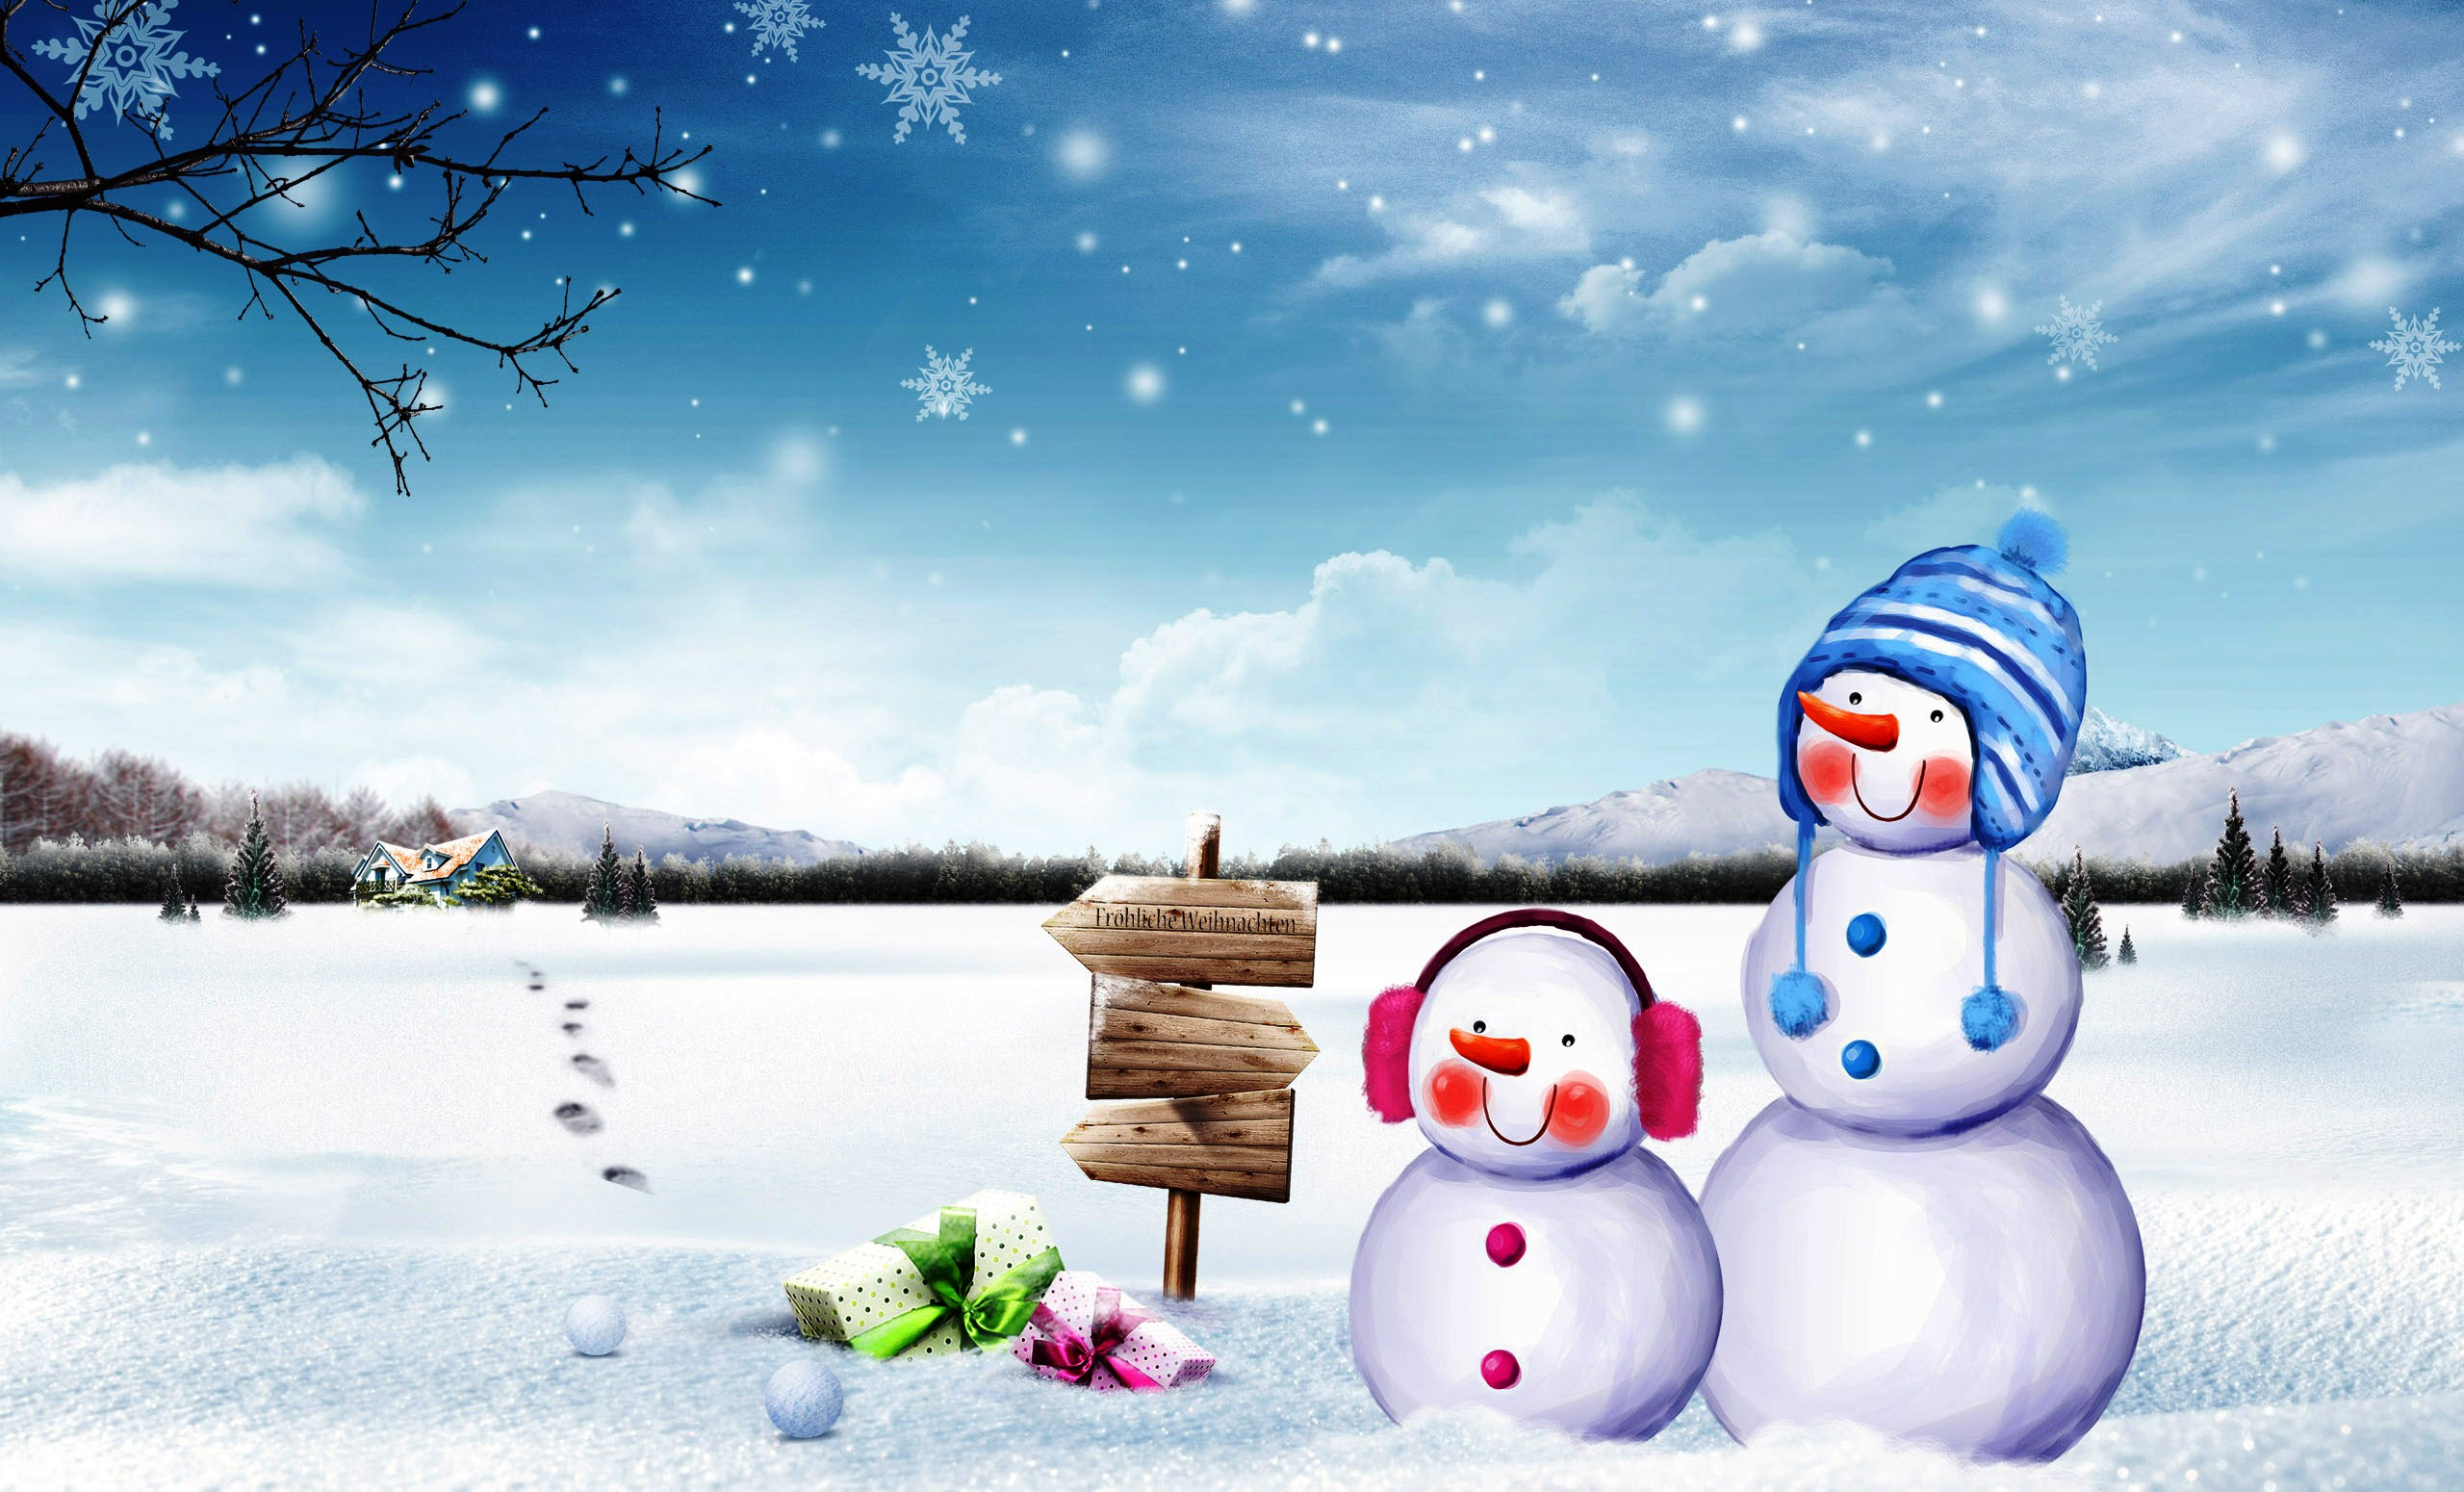 Hd Animated Wallpapers For Mobile Free Download Download Snowman Wallpaper Free Gallery